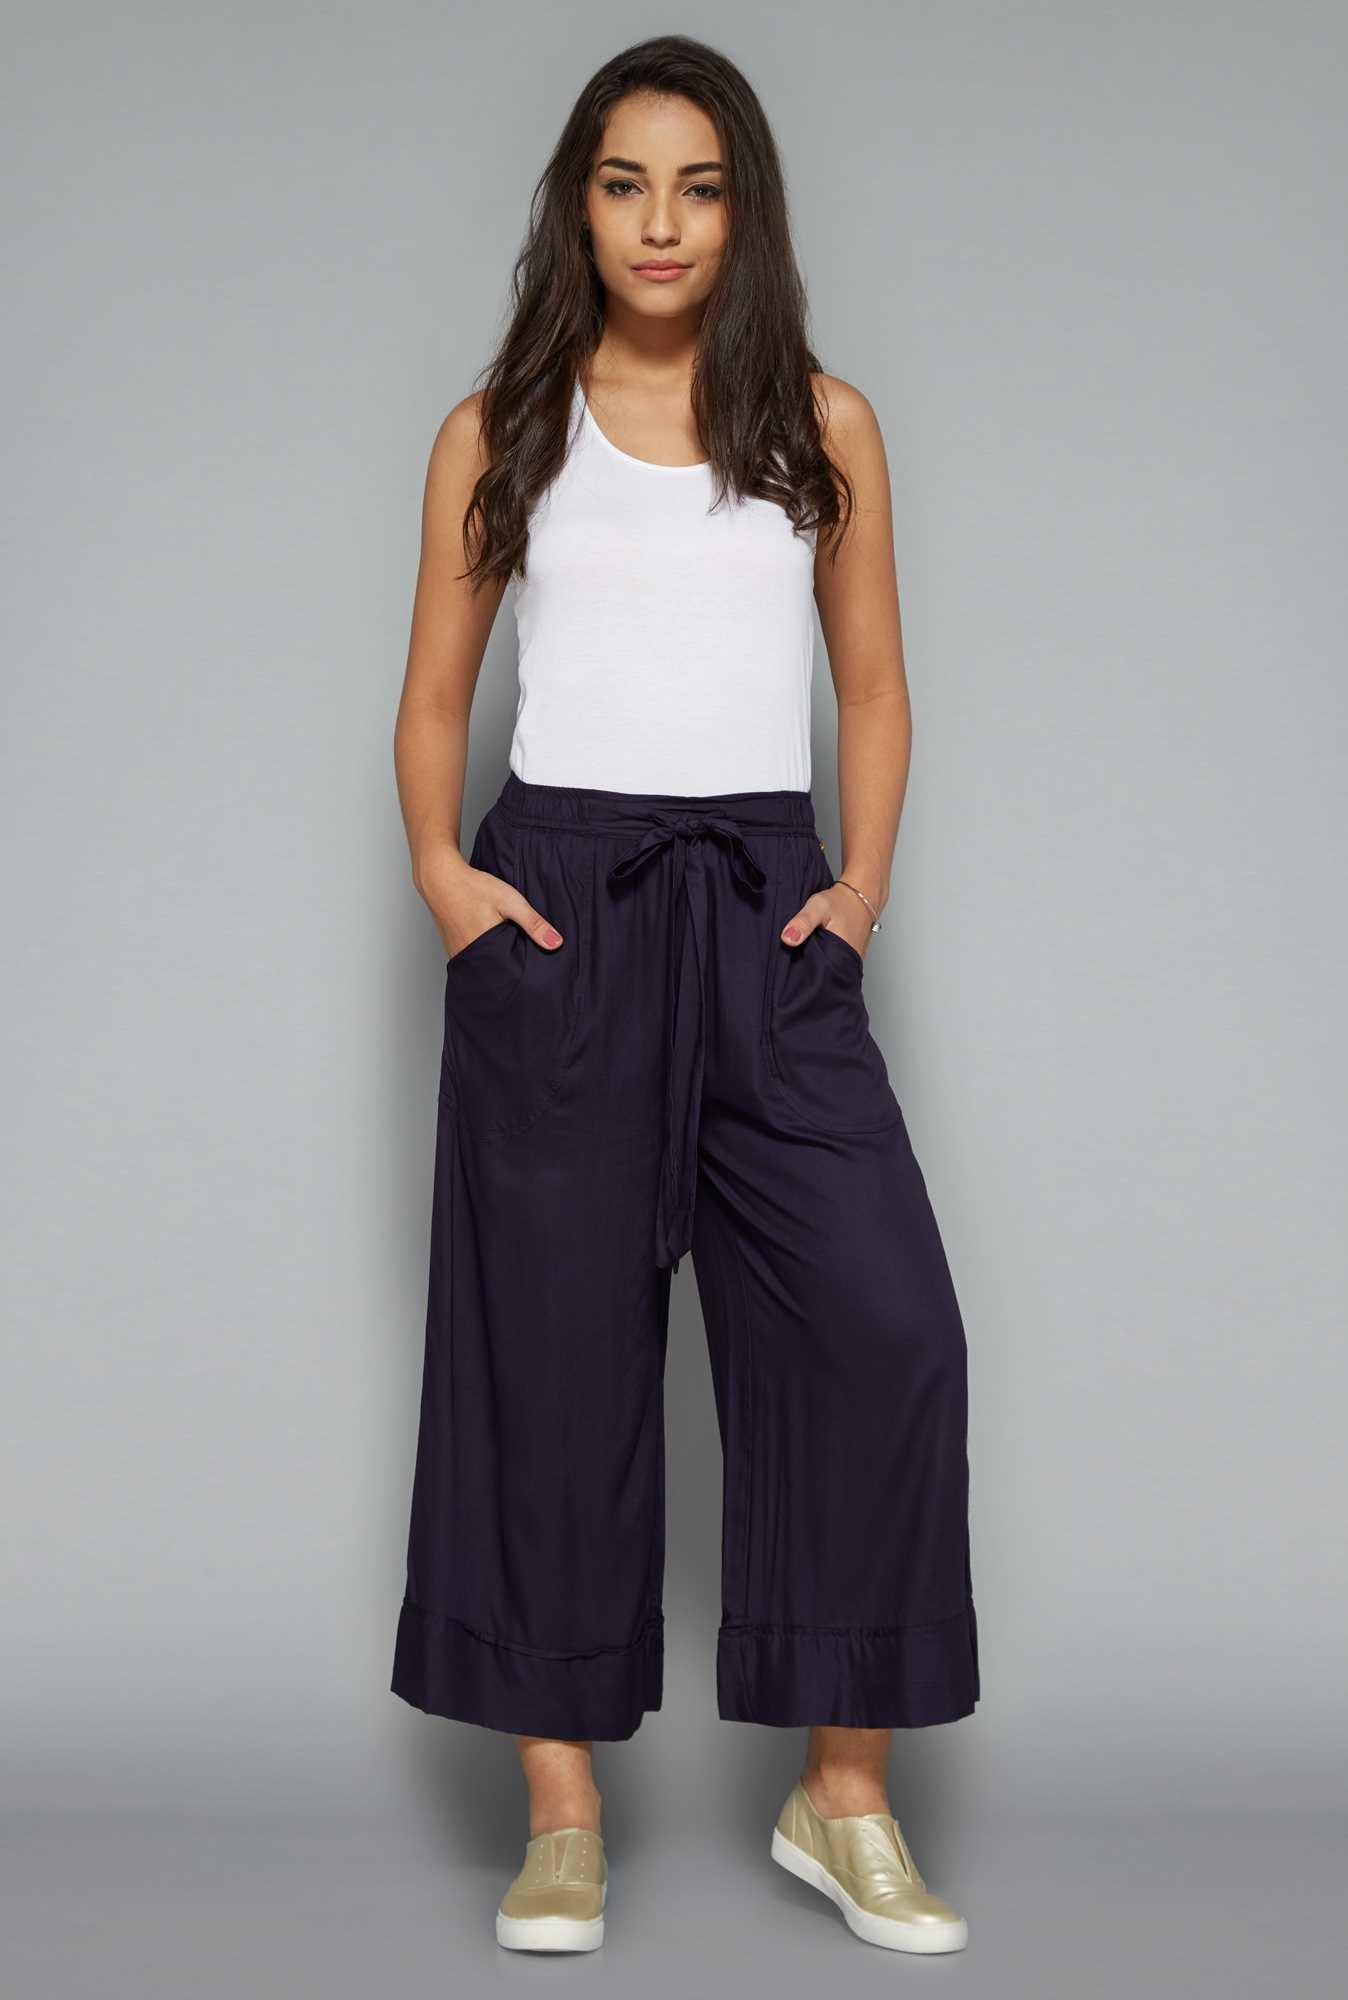 Nuon by Westside Navy Solid Palazzos